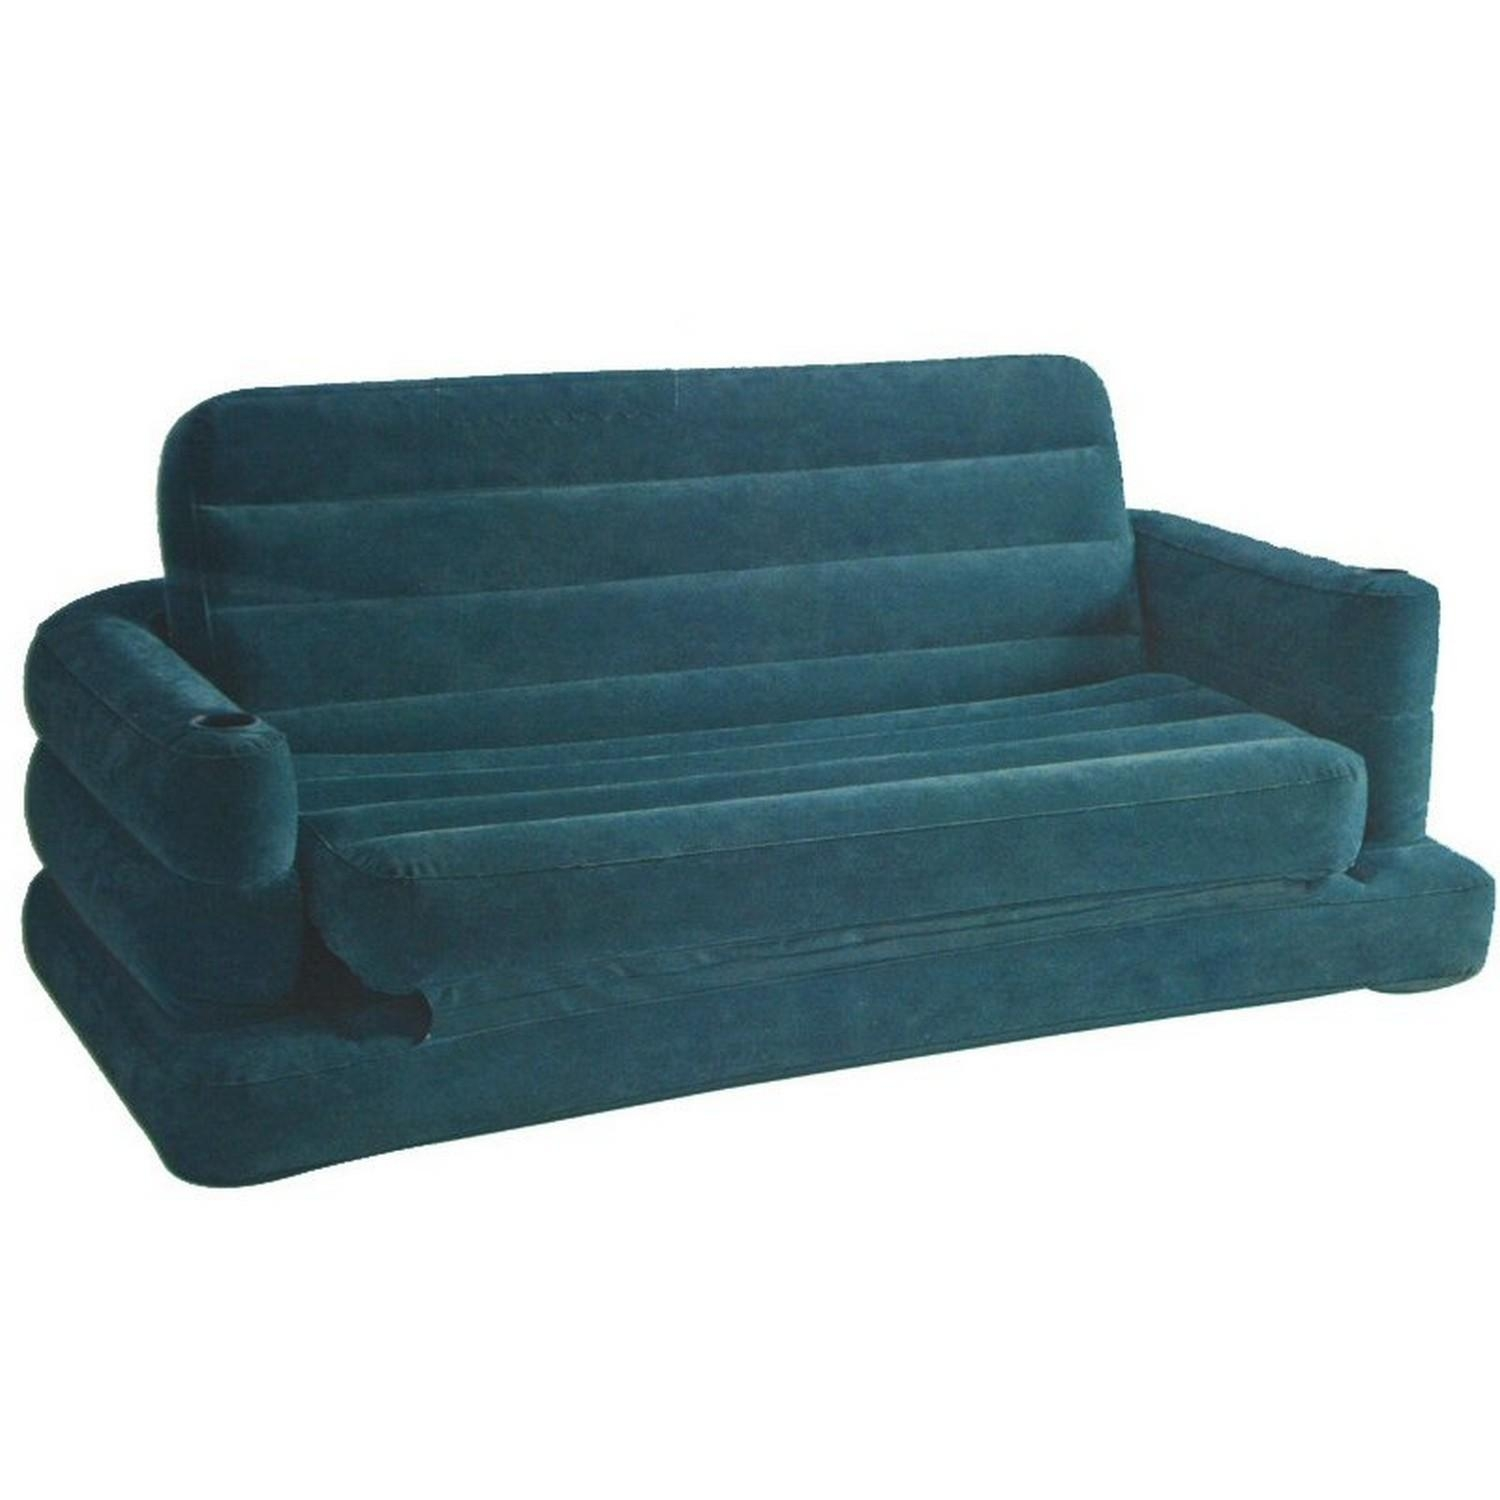 Sofa Bed Air Mattress Inflatable Pull Out Air Sofa Bed Mattress For Intex Inflatable Pull Out Sofas (View 16 of 20)